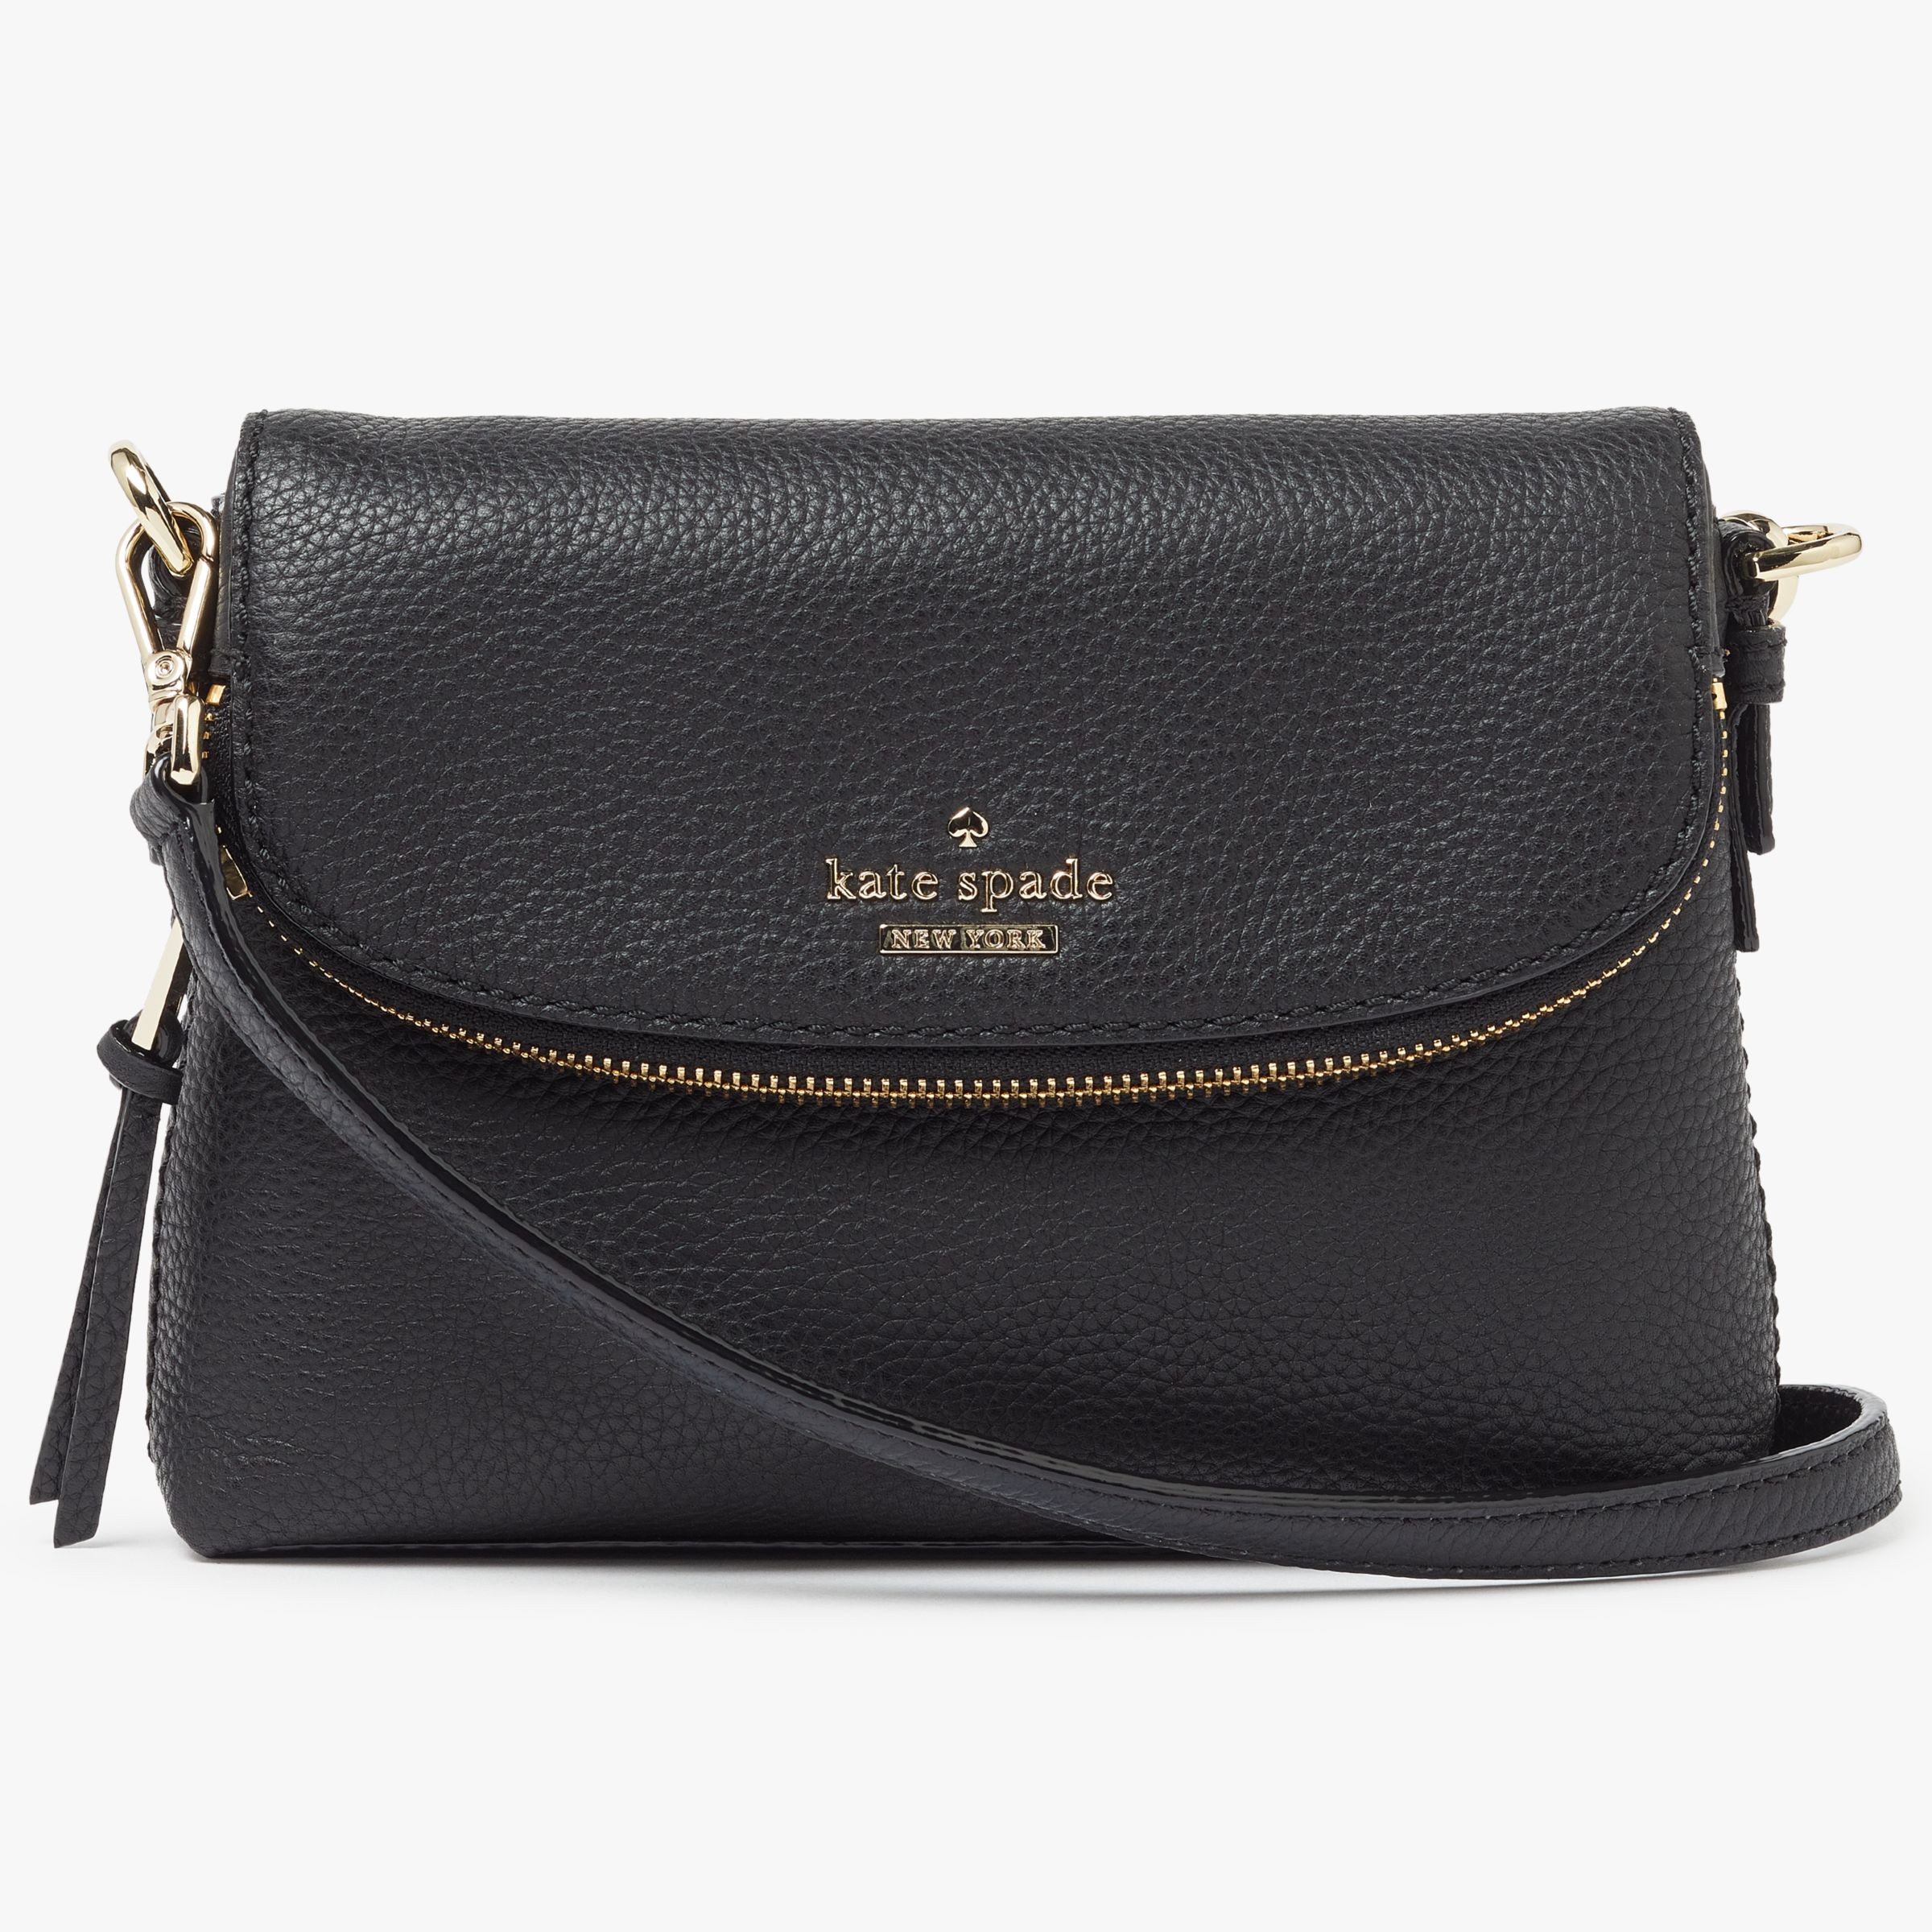 bd111941c kate spade new york Jackson Street Harlyn Small Leather Cross Body Bag,  Black at John Lewis & Partners